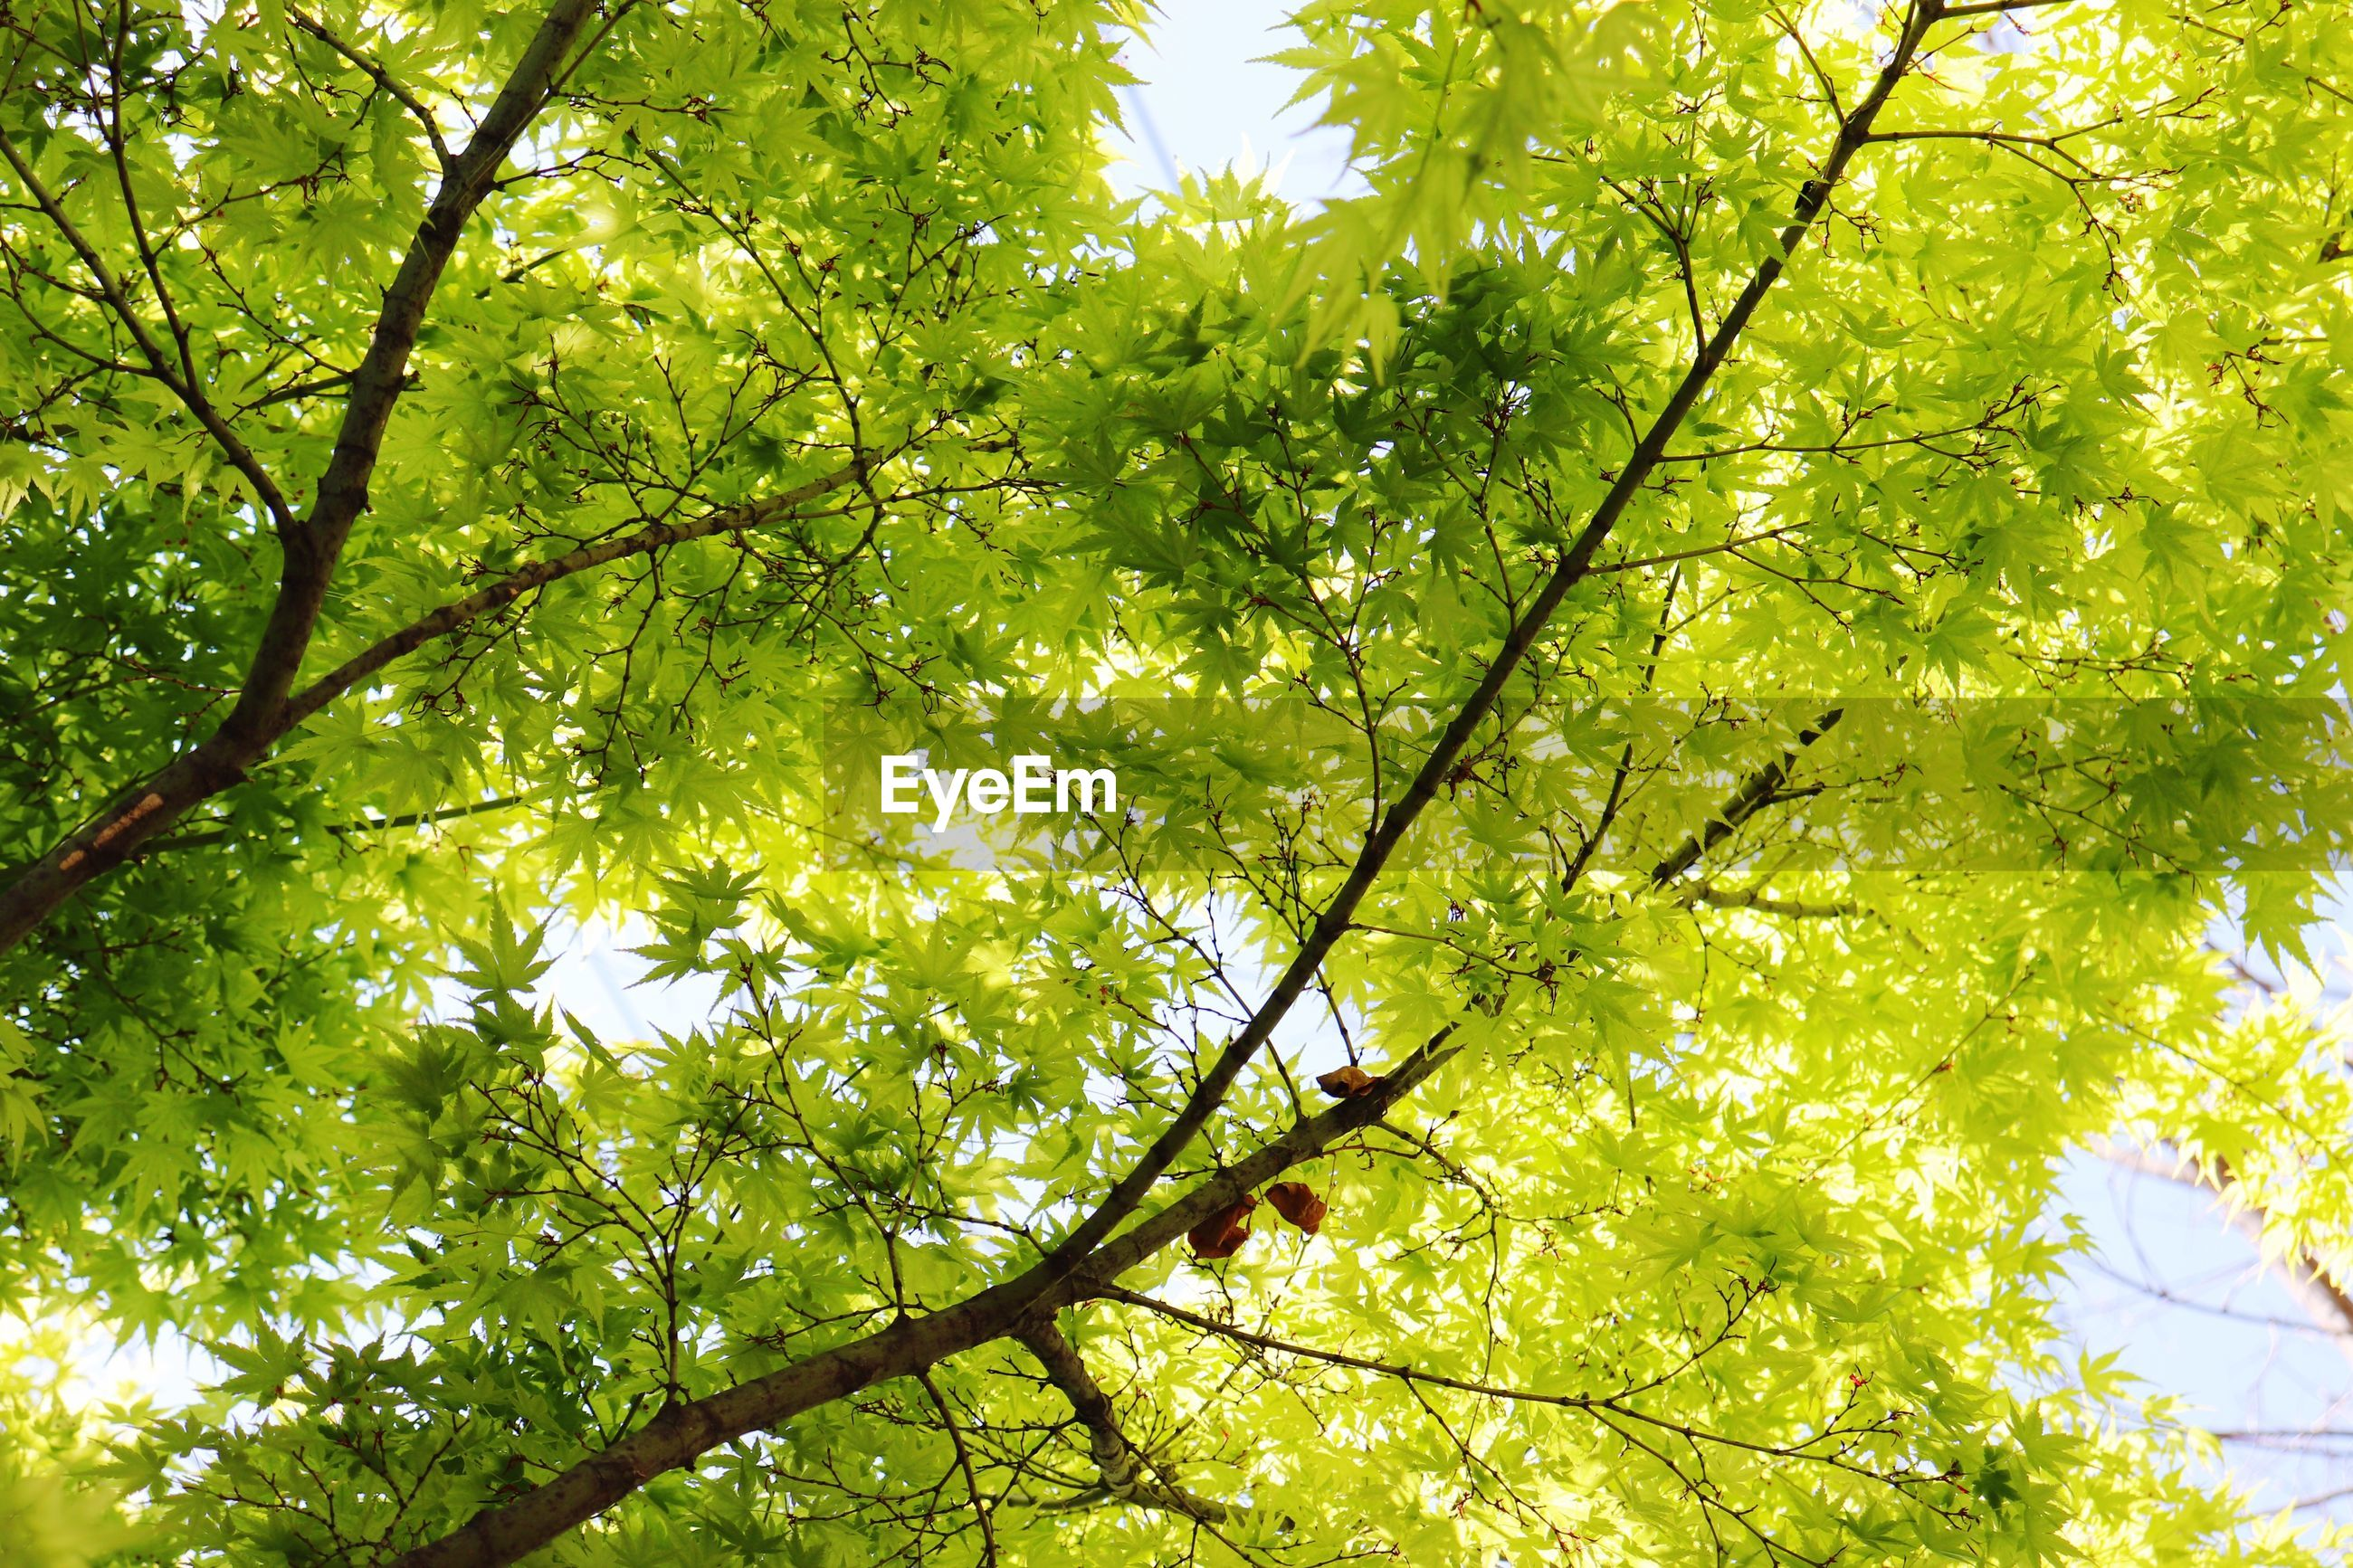 tree, plant, branch, beauty in nature, growth, green color, low angle view, leaf, nature, day, plant part, no people, tranquility, outdoors, sunlight, sky, forest, environment, scenics - nature, backgrounds, tree canopy, leaves, directly below